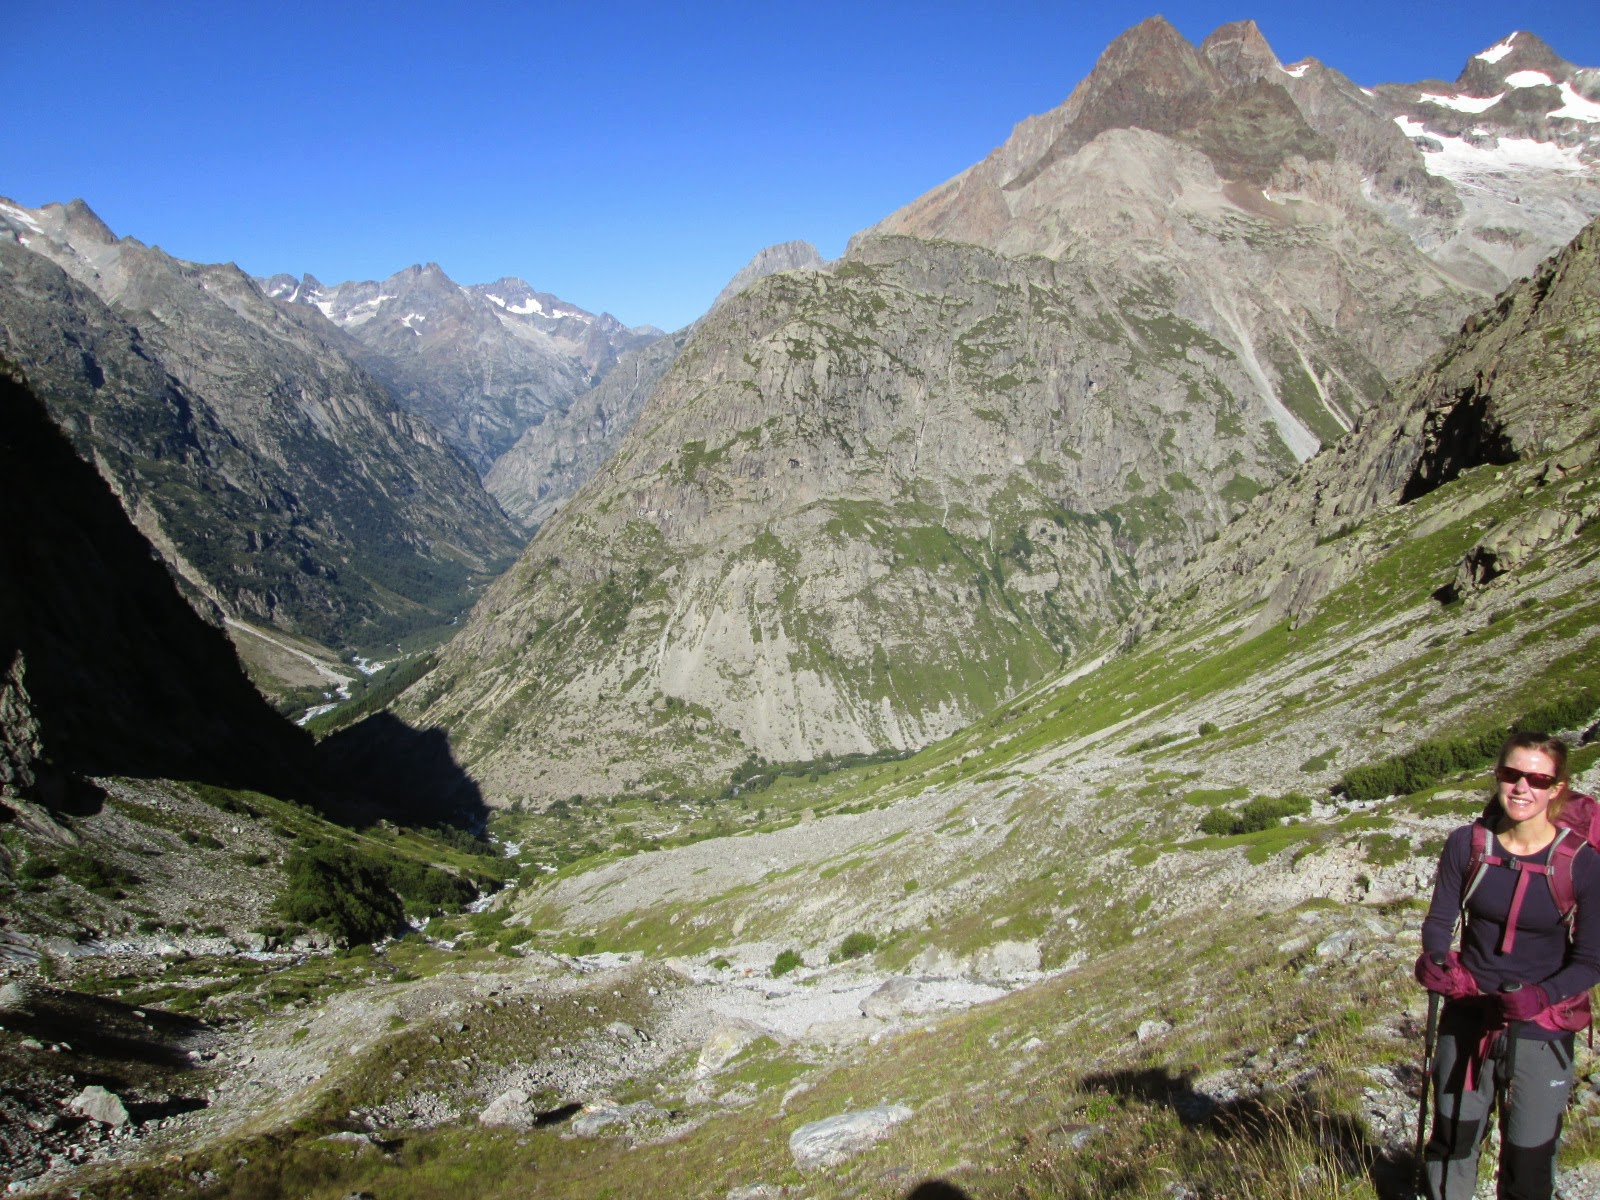 Vallon de Borne Pierre under Barre des Ecrins, Ecrins National Park, Alps, France